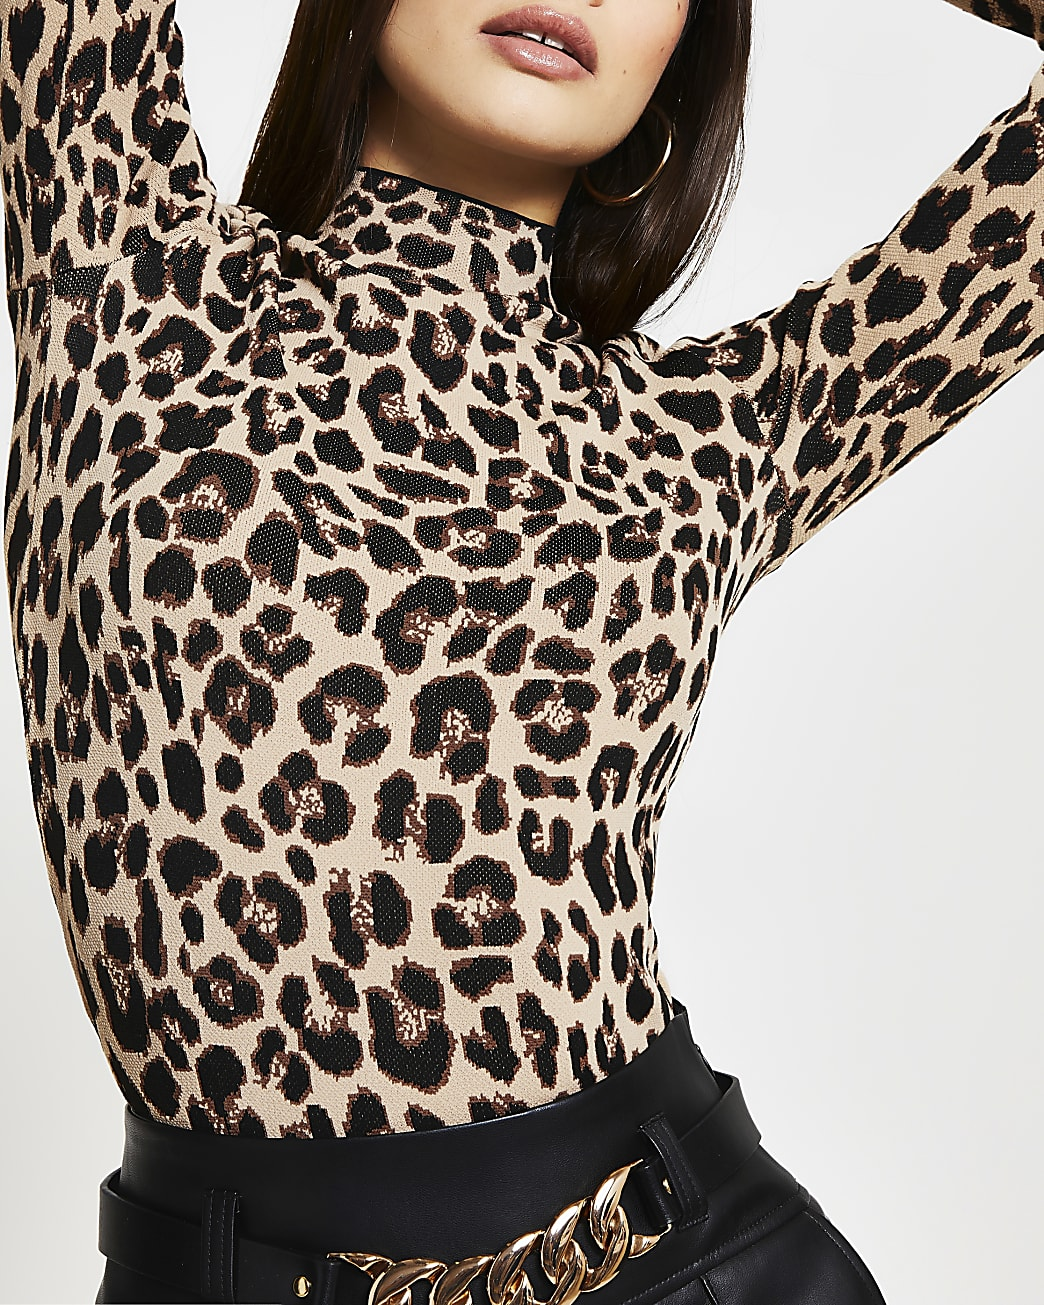 Beige leopard print fitted top